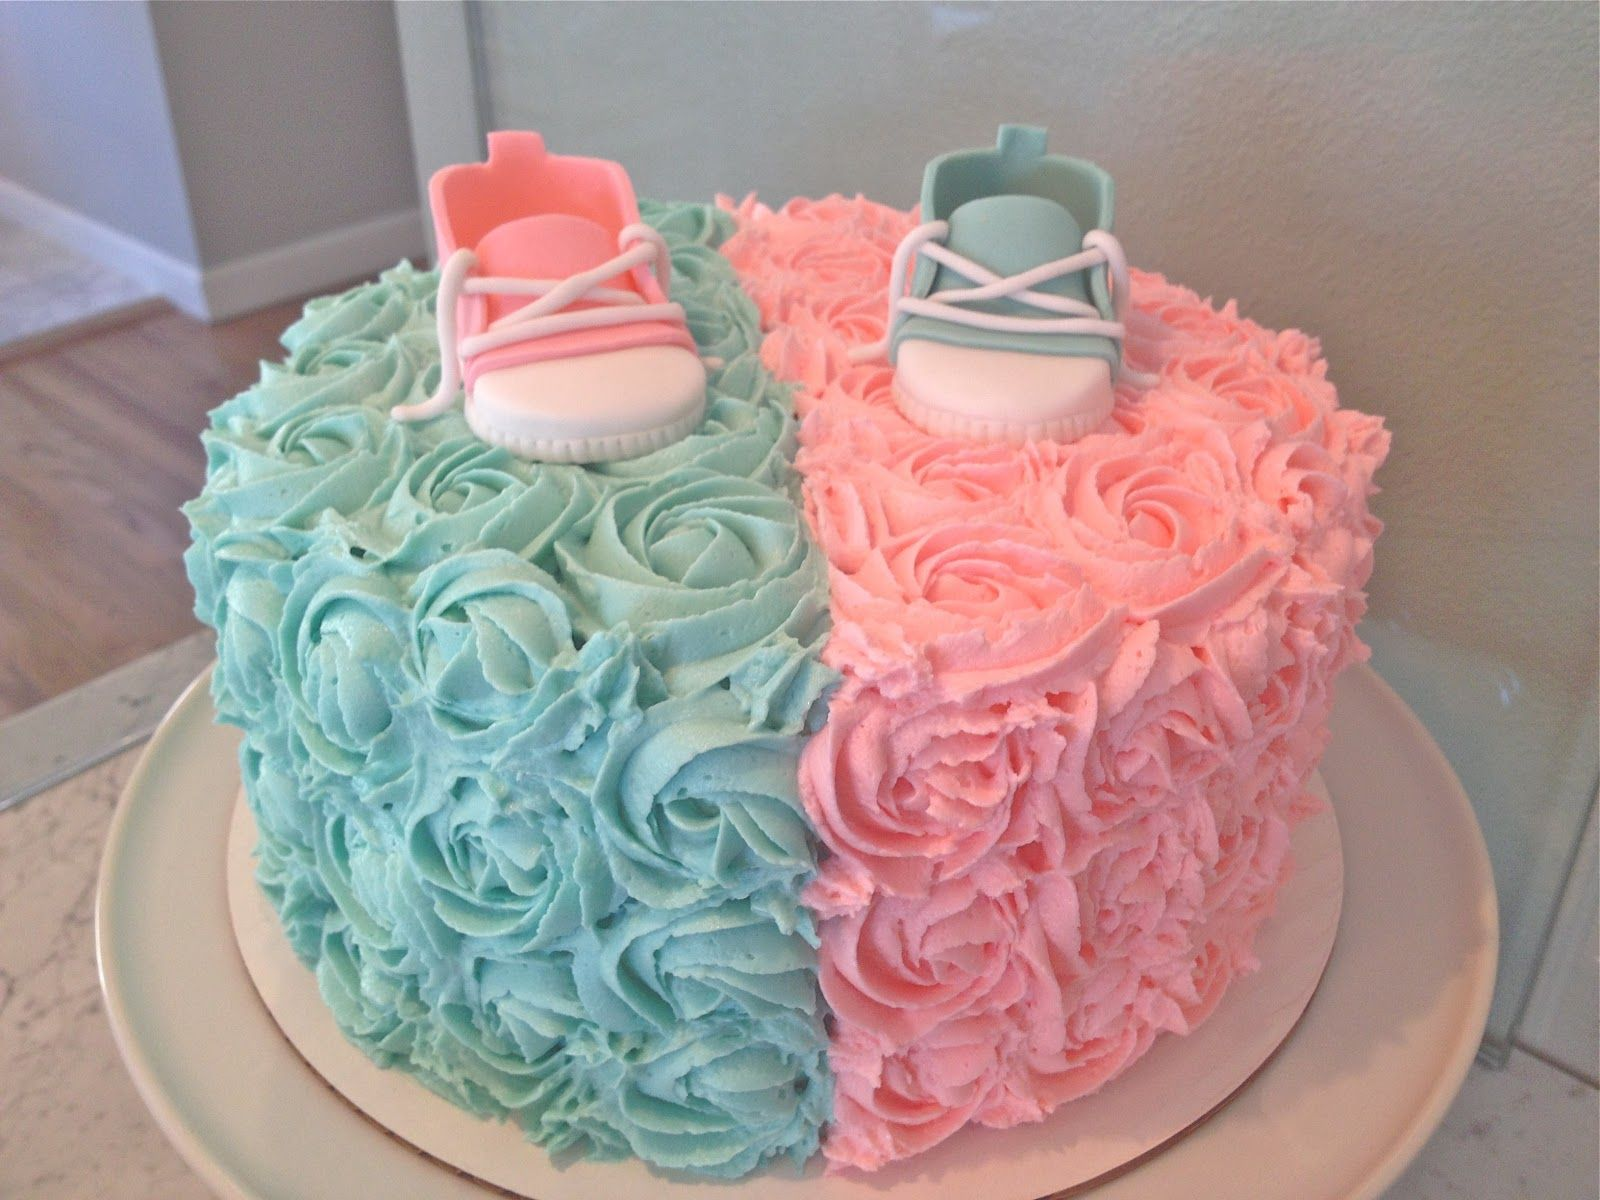 64 best Gender Reveal Party images on Pinterest